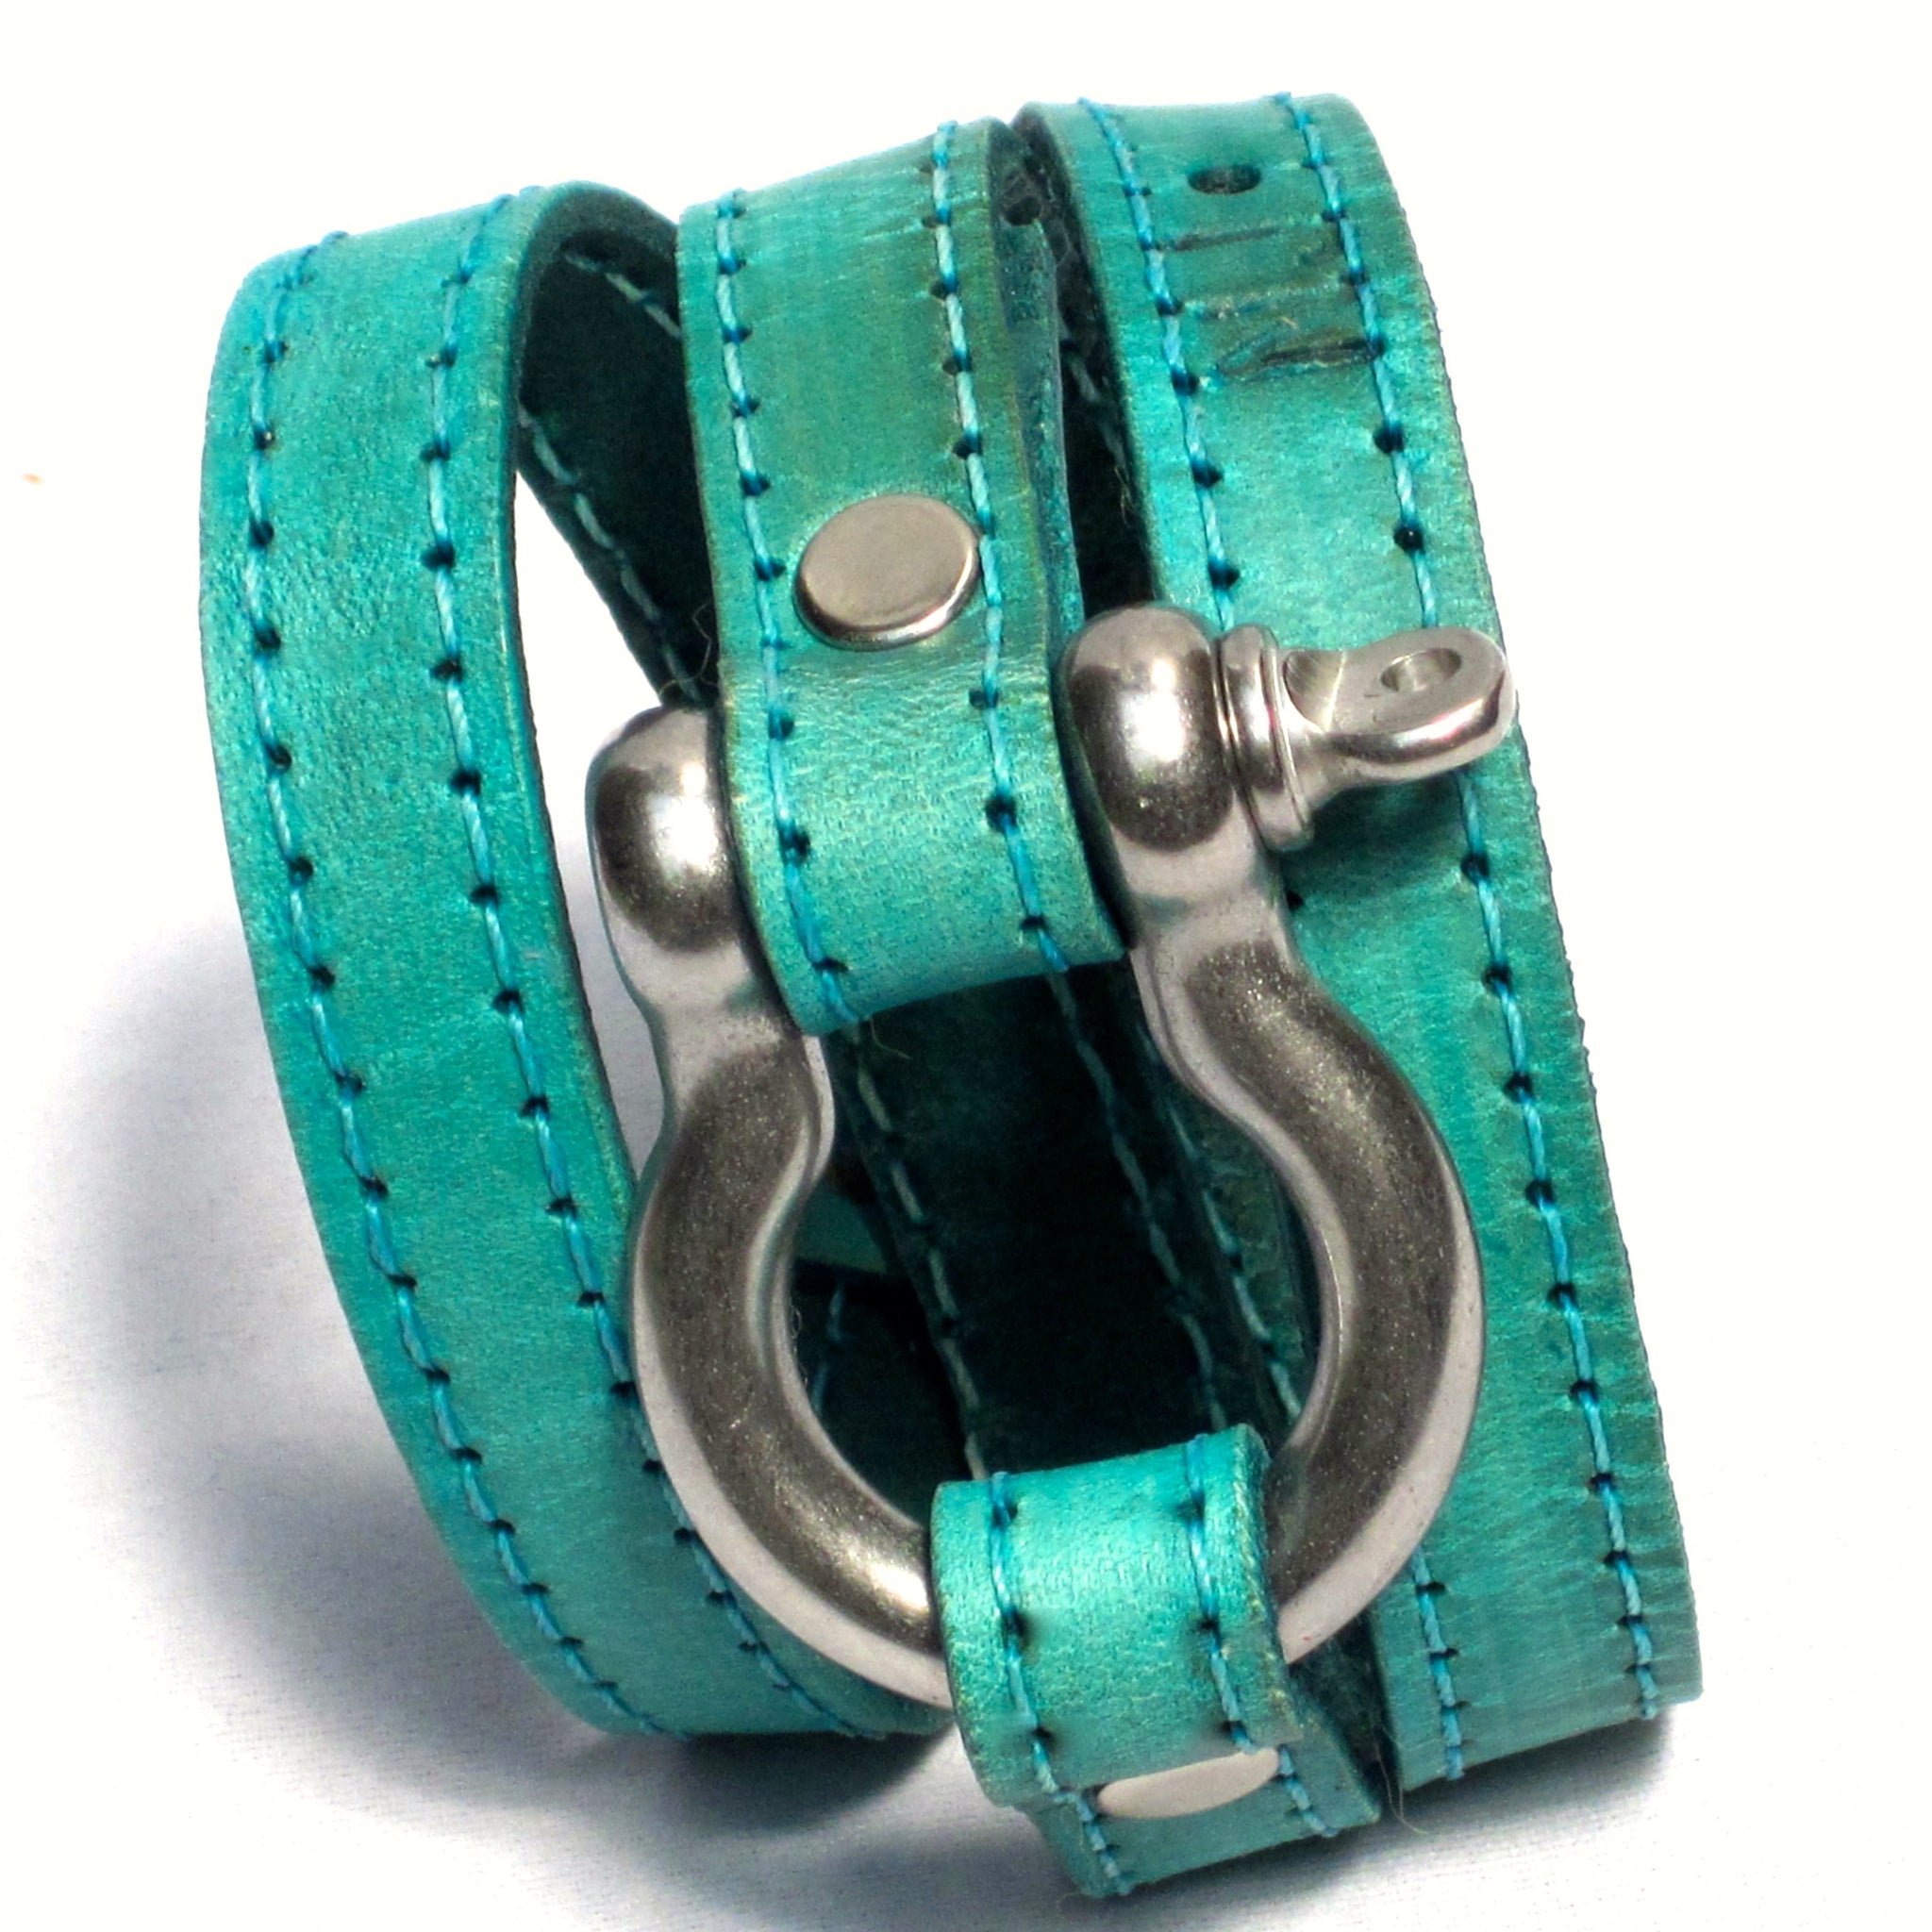 TRIPLE WRAPAROUND LEATHER BRACELET by nyet jewelry.